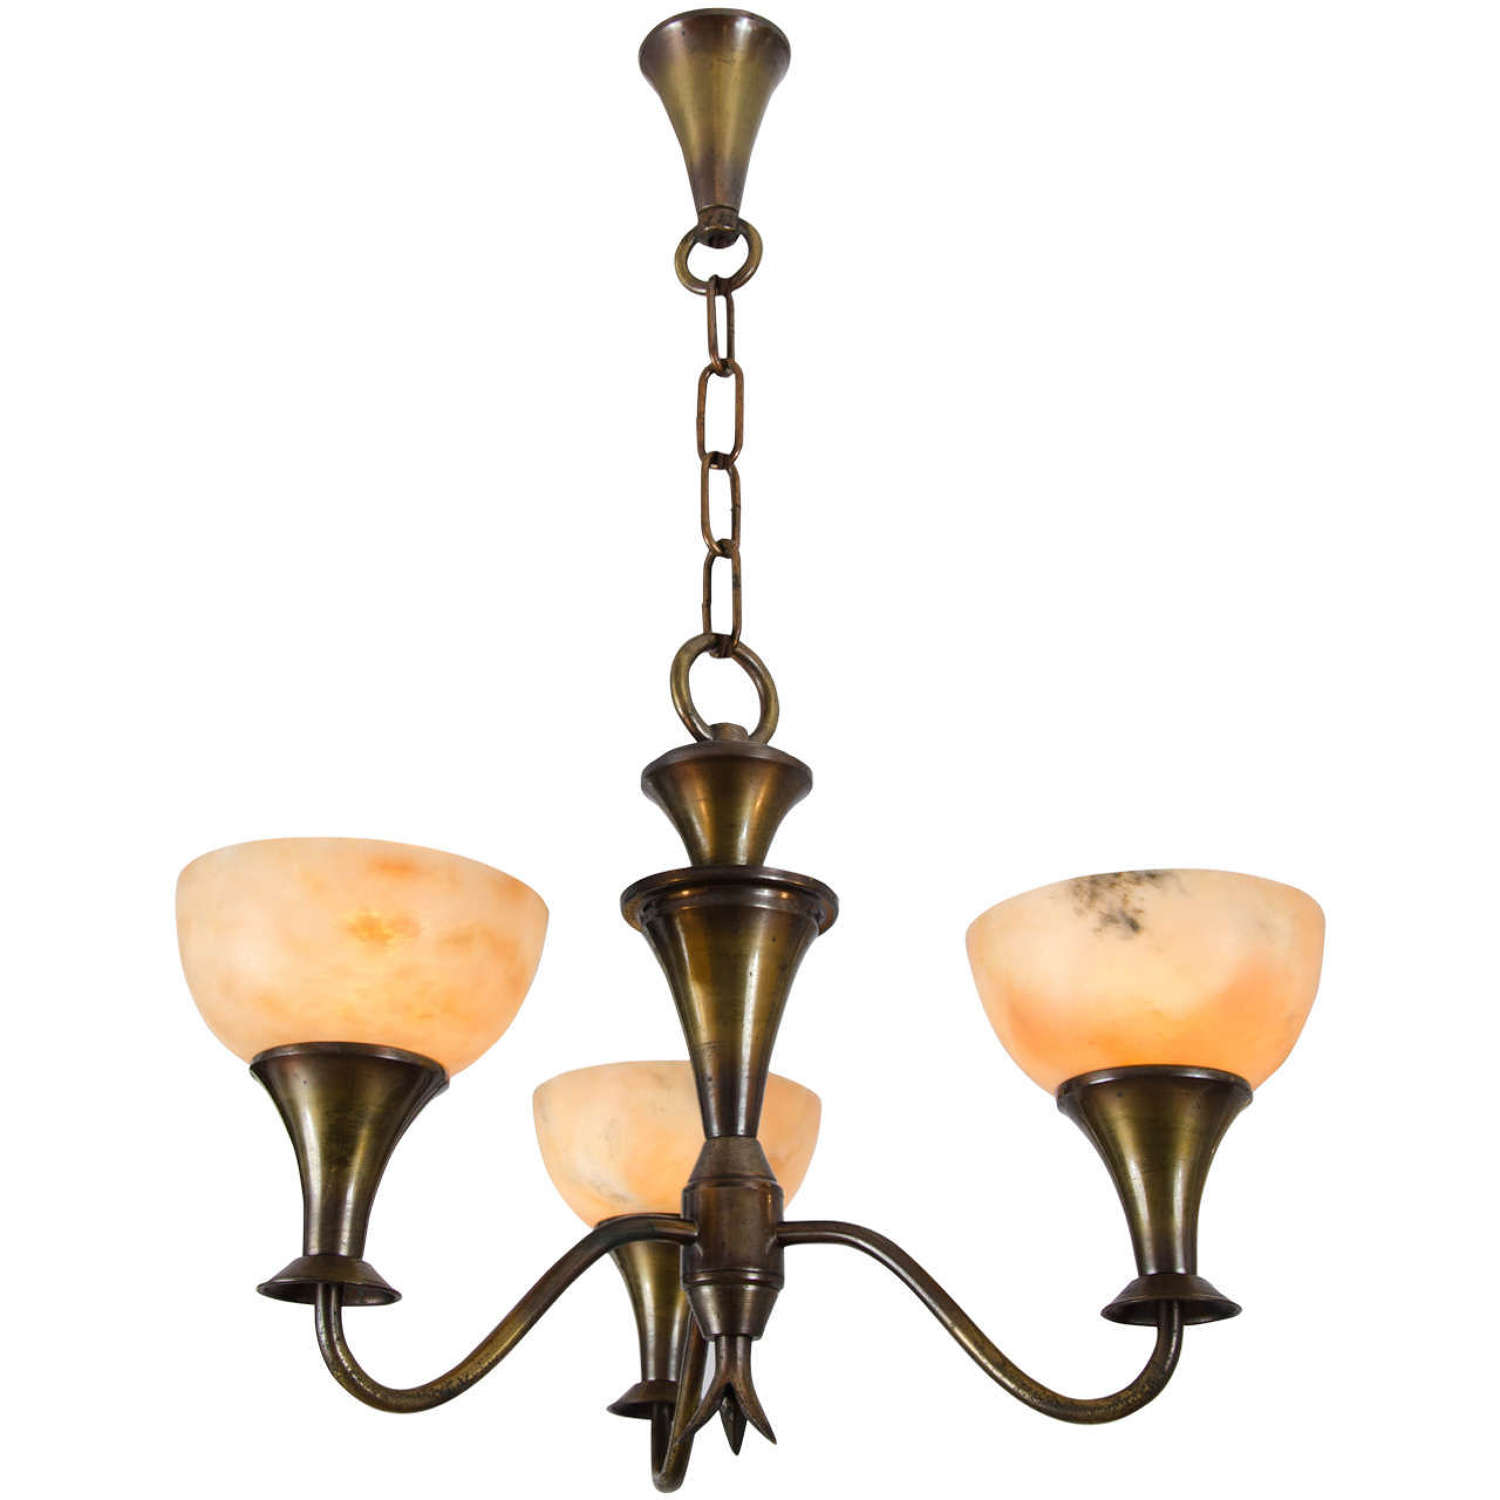 Art Deco Chandelier with Alabaster Shades and Brass